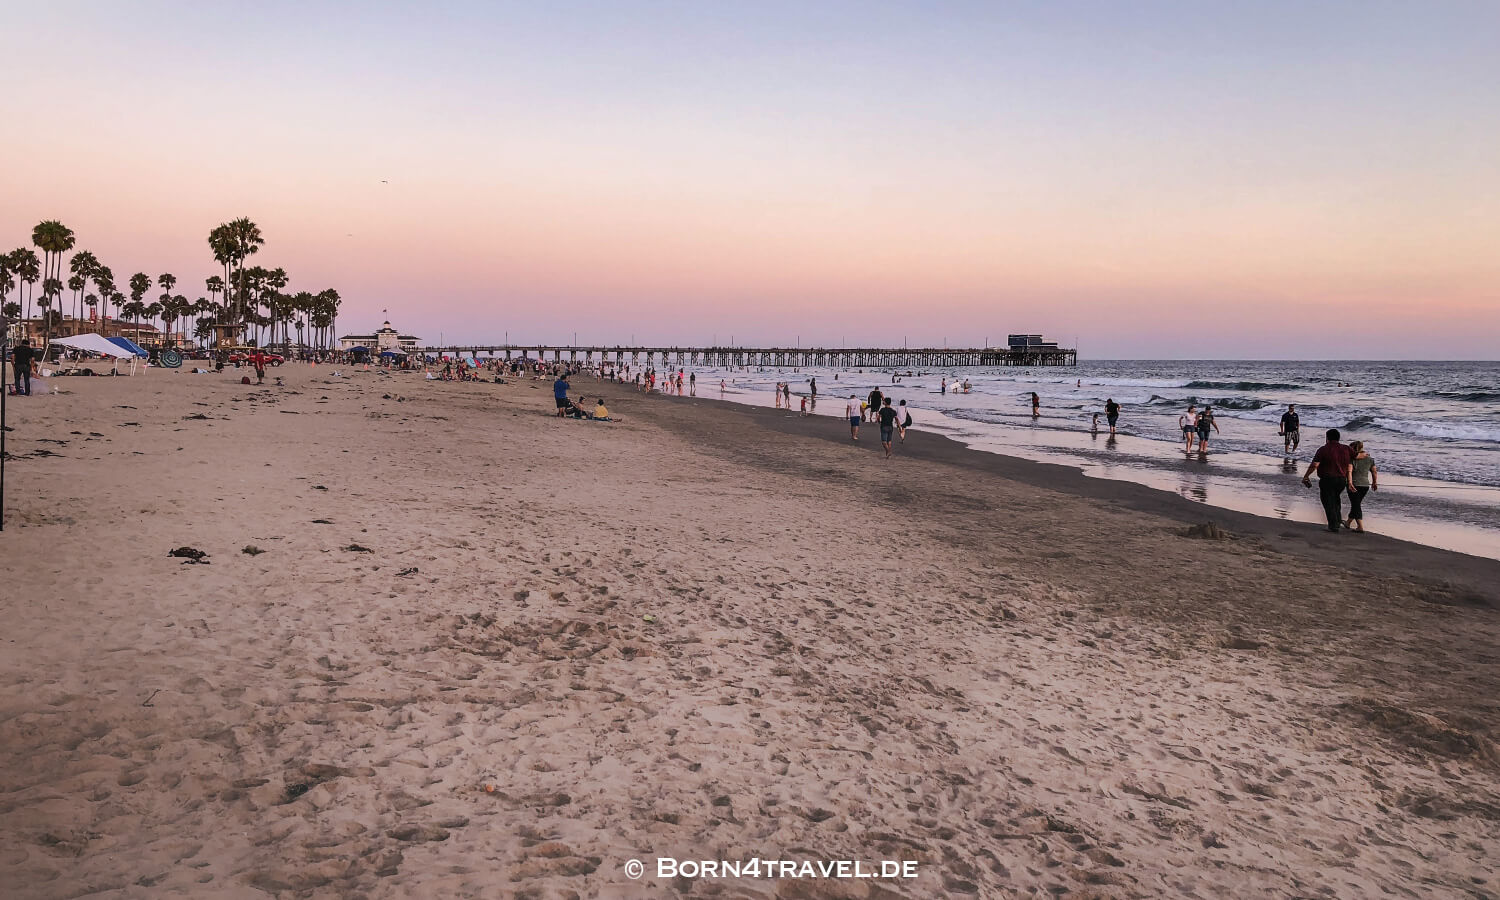 Newport Beach,Orange County,California,Southwest,USA,born4travel.de